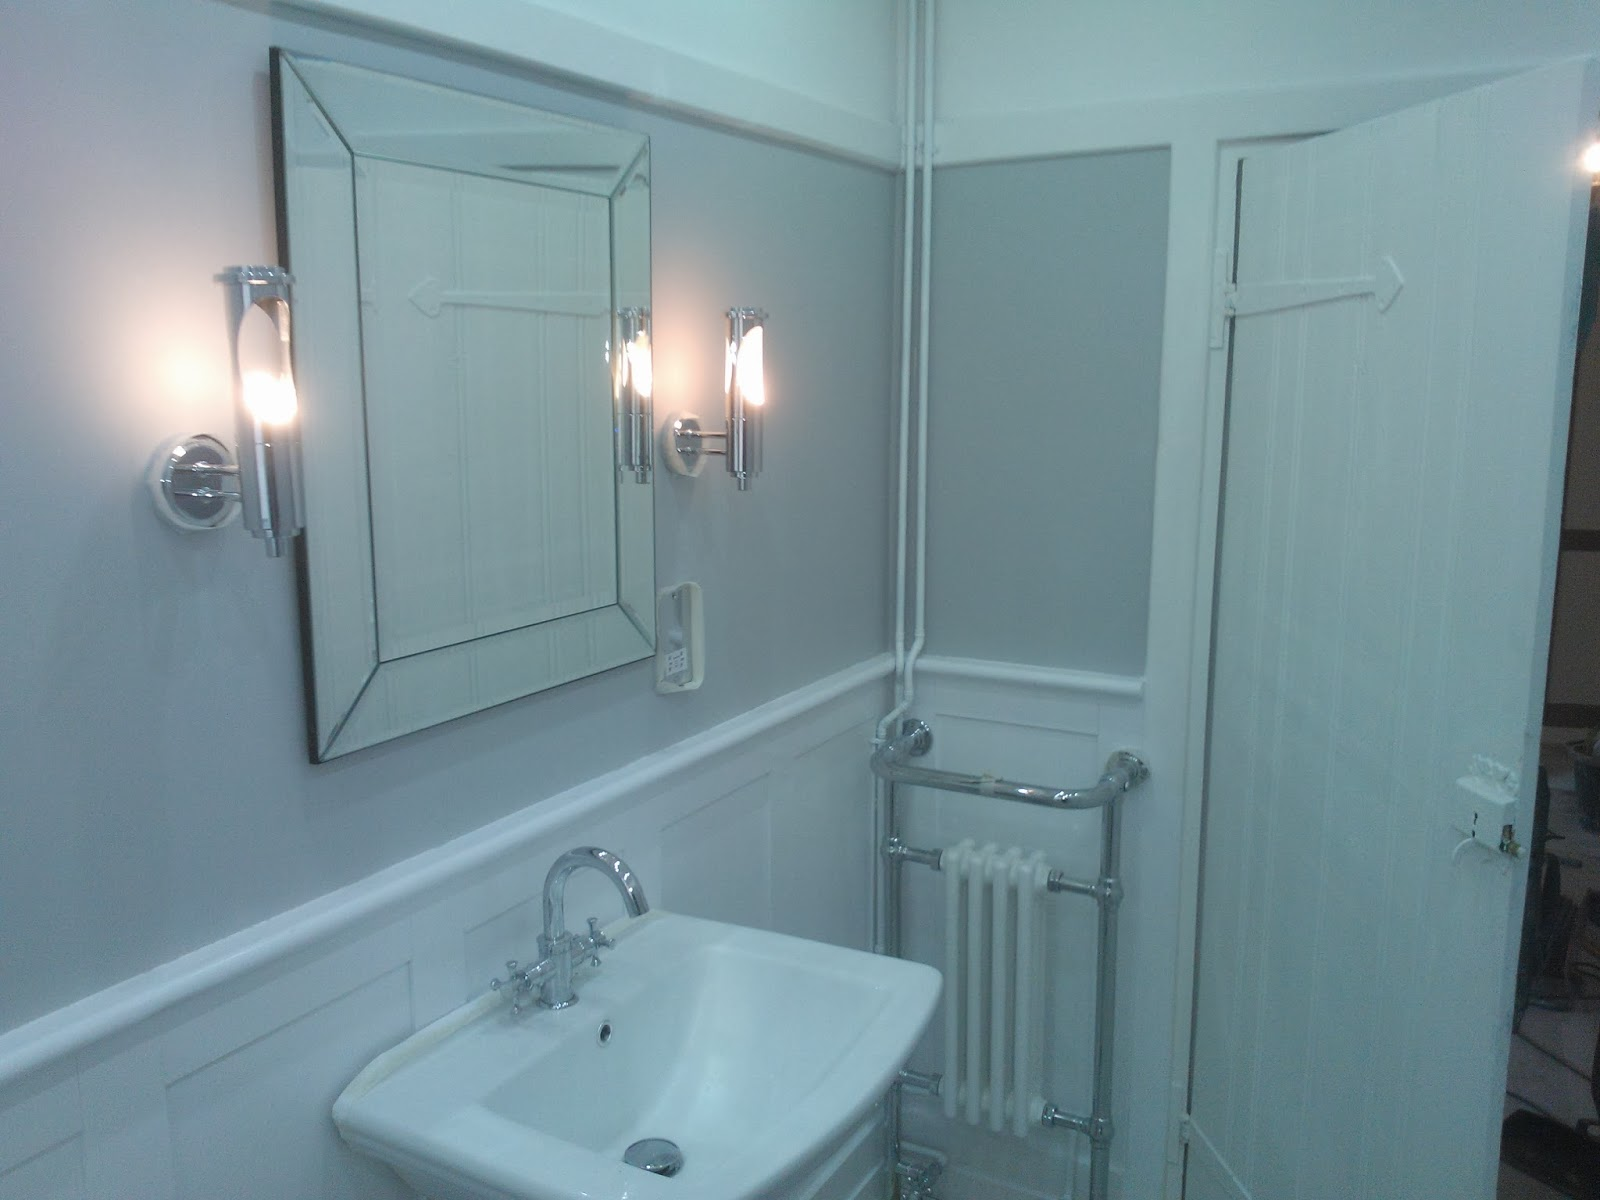 Kitchens & Bathrooms comfortable bathrooms for seniors ,additional ...